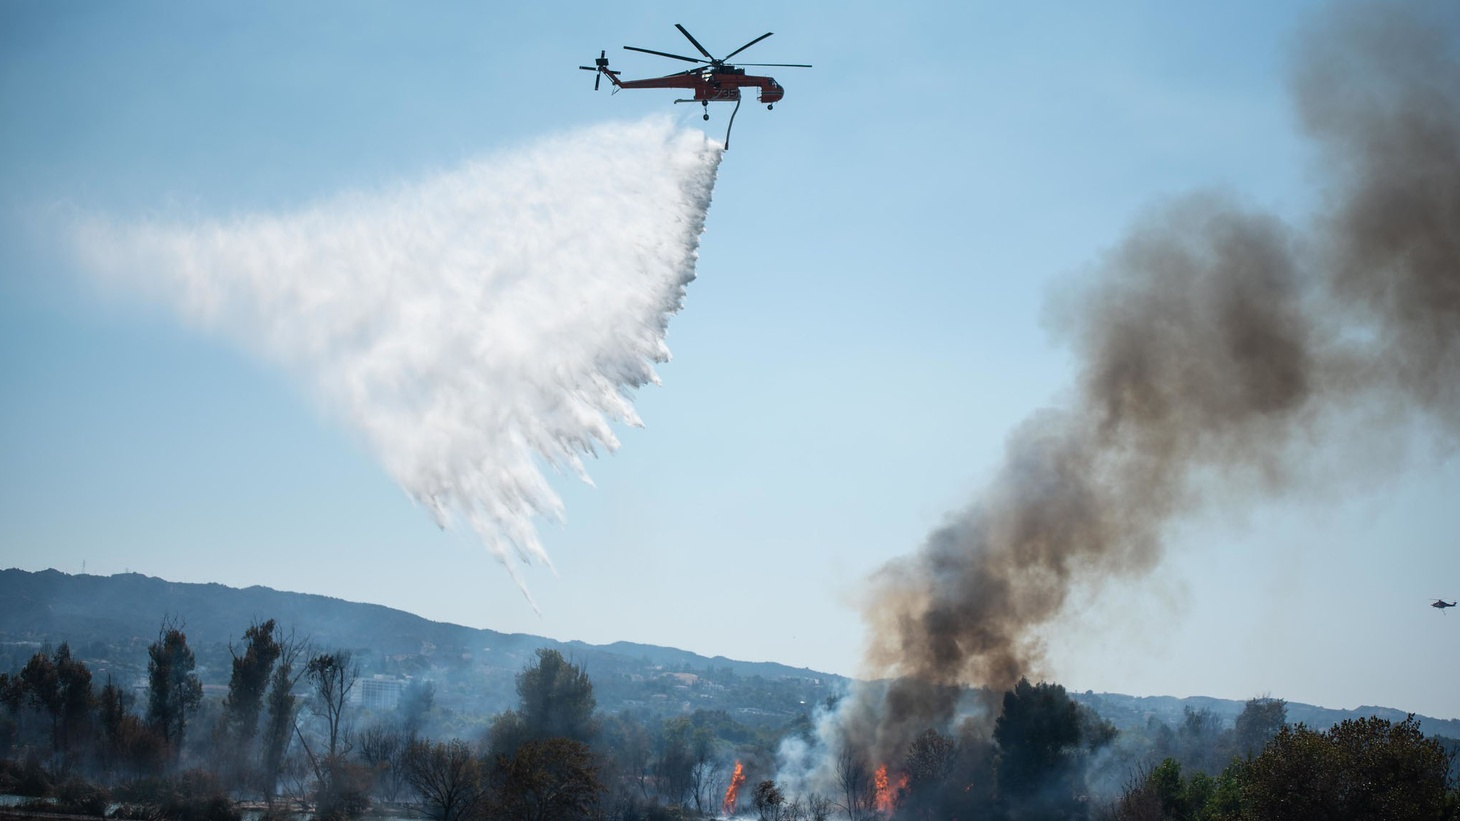 More than 100 firefighters battle the intensely hot weather to extinguish the fire in the Sepulveda Basin in California, United States on September 7, 2020. With the help of Los Angeles County manual crews, LAFD CERT volunteers and an overhead crane, firefighters declared 100% containment after more than three hours of work by land and air, protecting the Japanese gardens and the water reclamation plant. The cause of the fire is still under investigation.